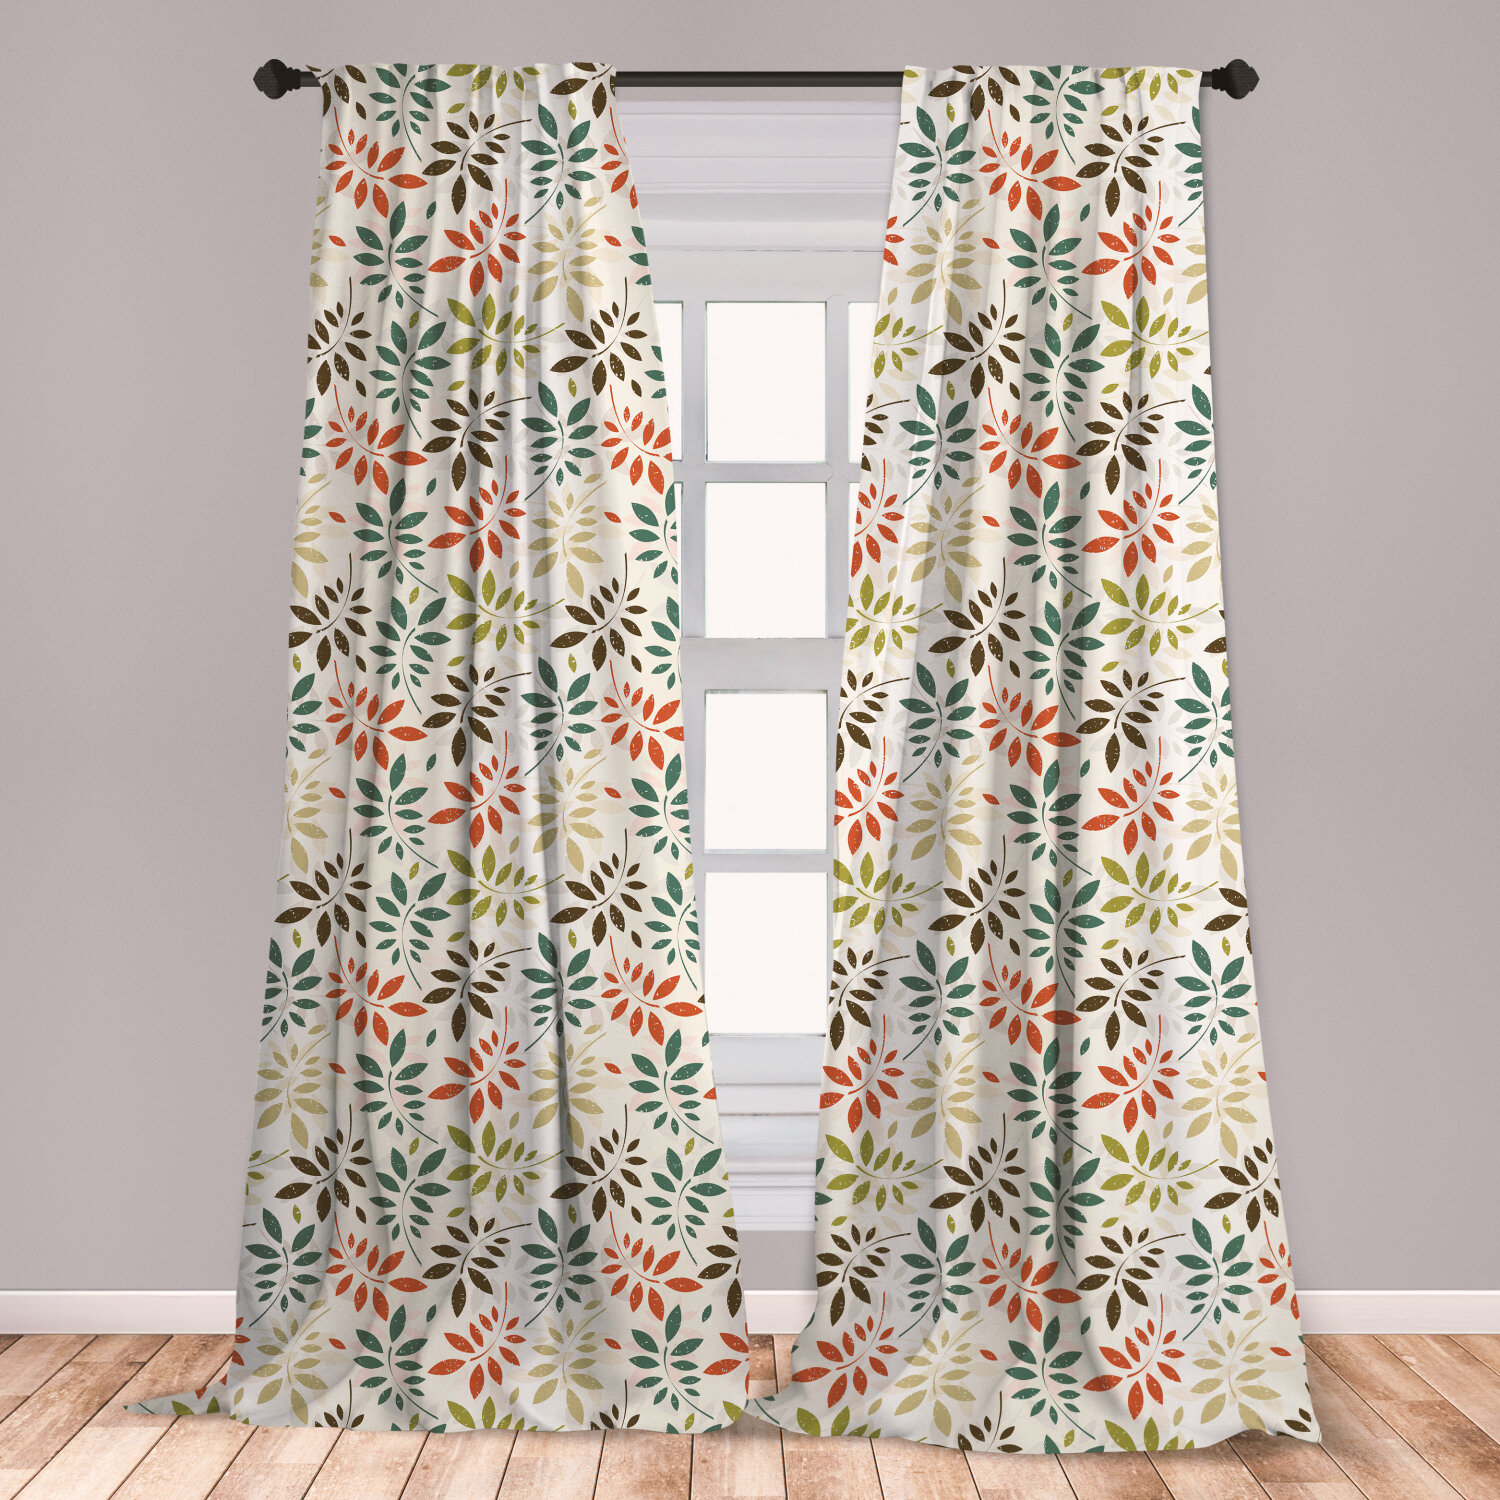 East Urban Home Ambesonne Grunge 2 Panel Curtain Set Vintage Pattern Of Colorful Falling Autumn Leaves Nature Change In Fall Season Theme Lightweight Window Treatment Living Room Bedroom Decor 56 X 63 Multicolor Wayfair